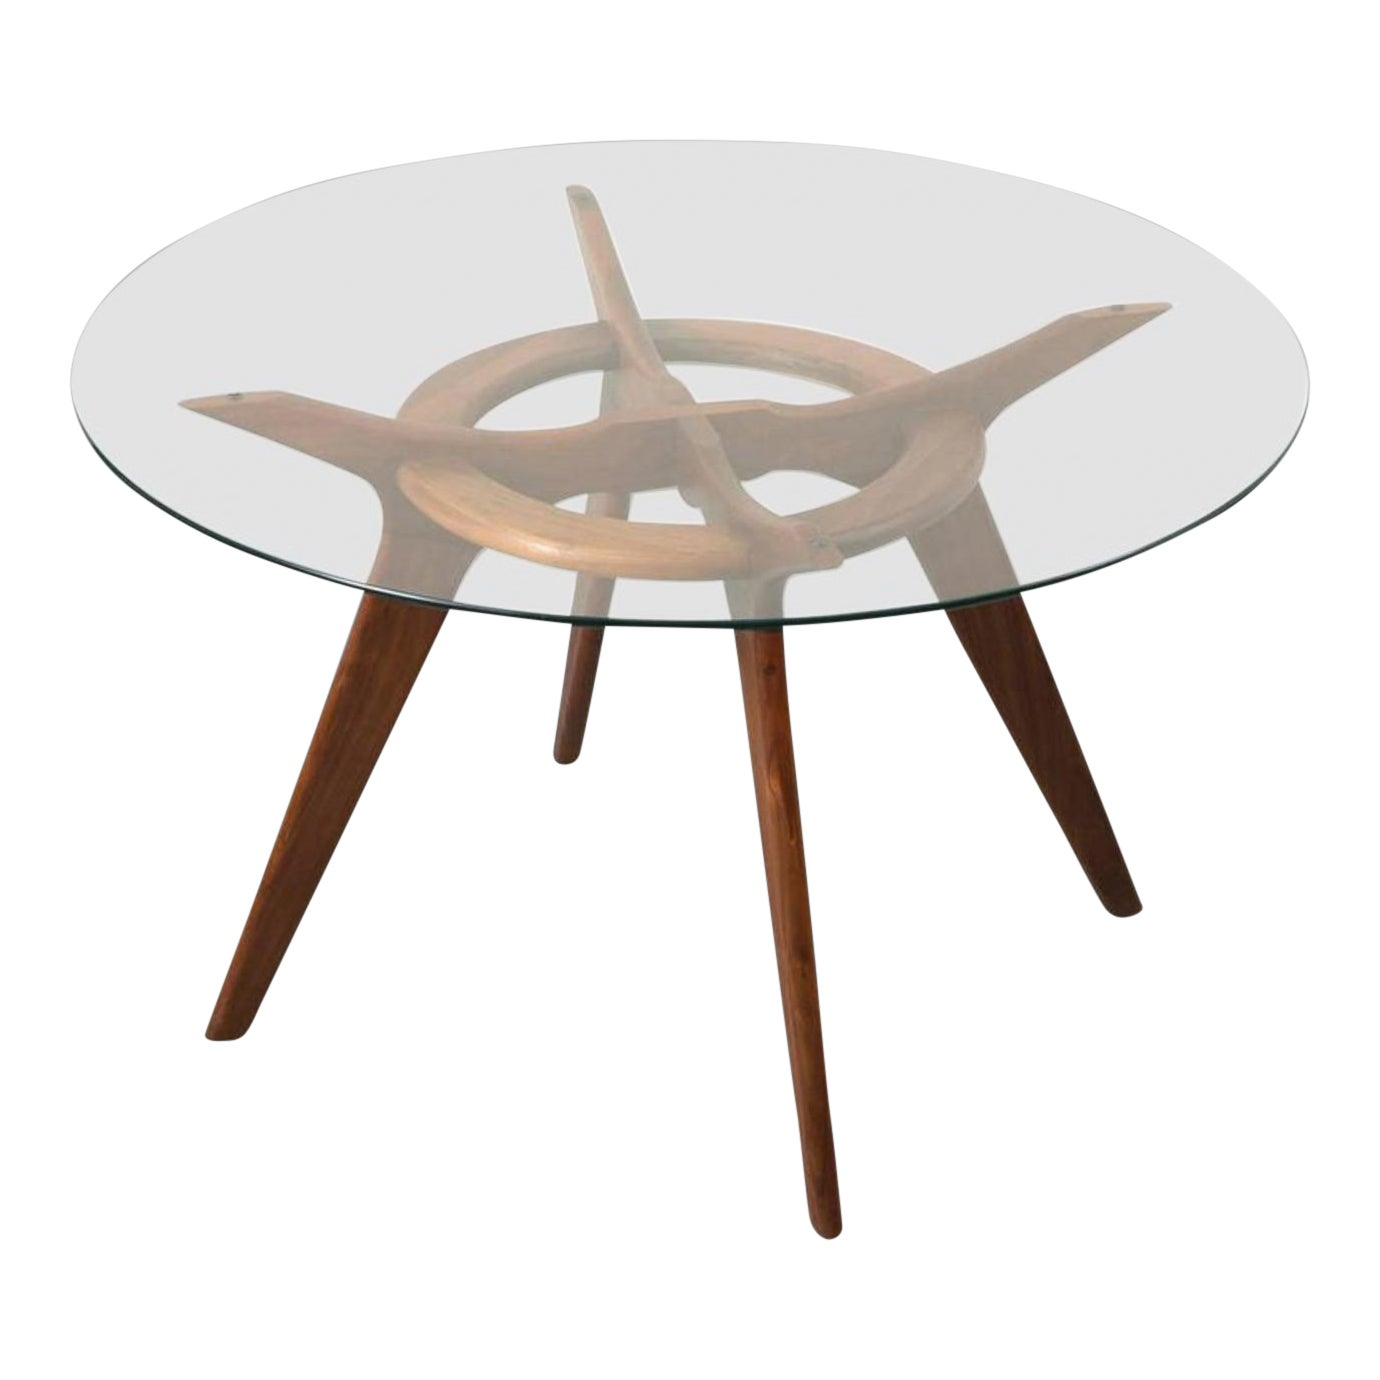 5475c459f3bf 1960s Mid-Century Modern Adrian Pearsall Walnut and Glass Dining Table